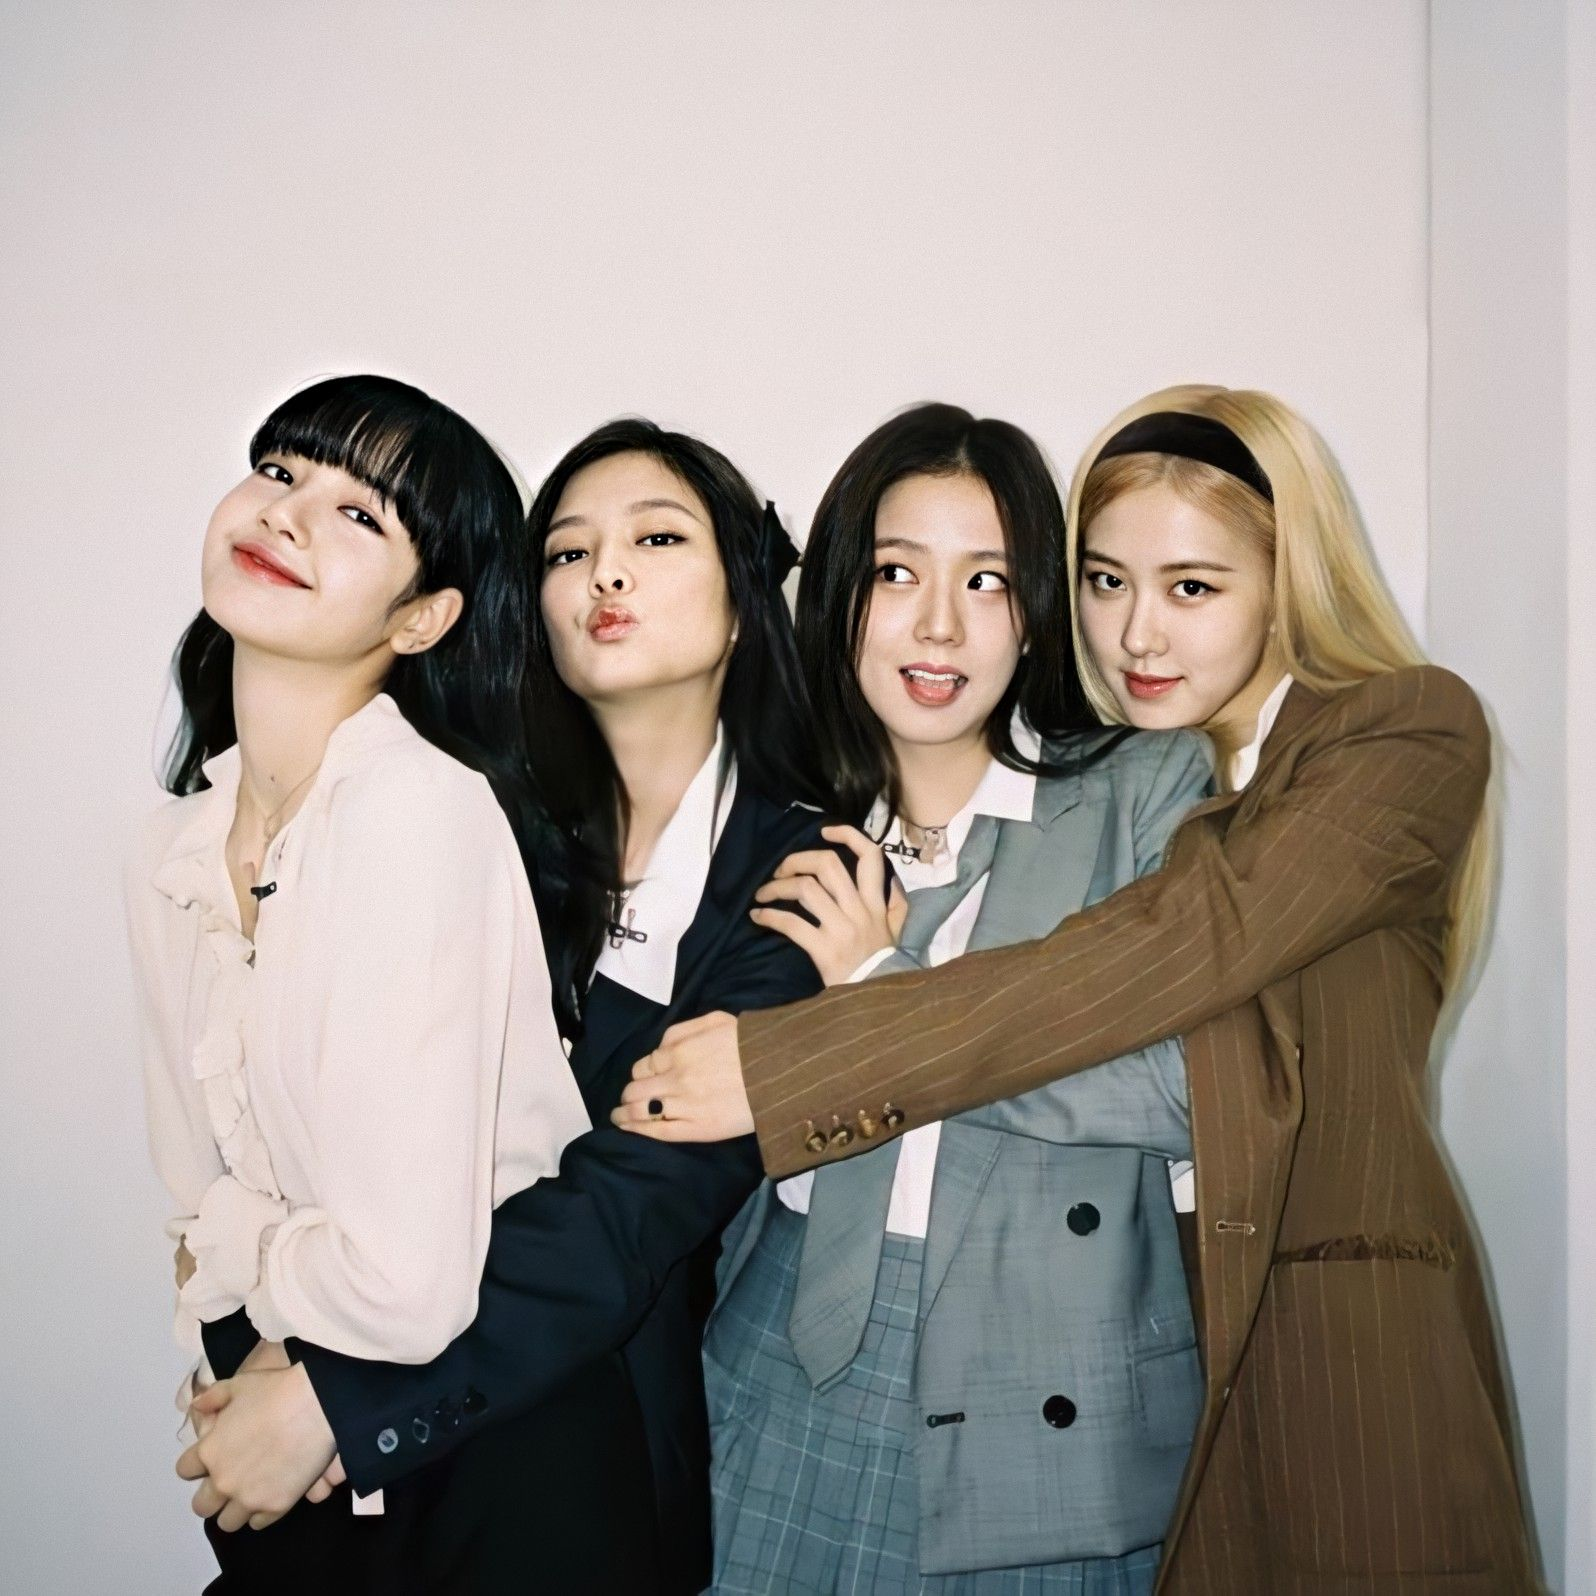 This picture shows one of my favorite kpop girl groups, Blackpink